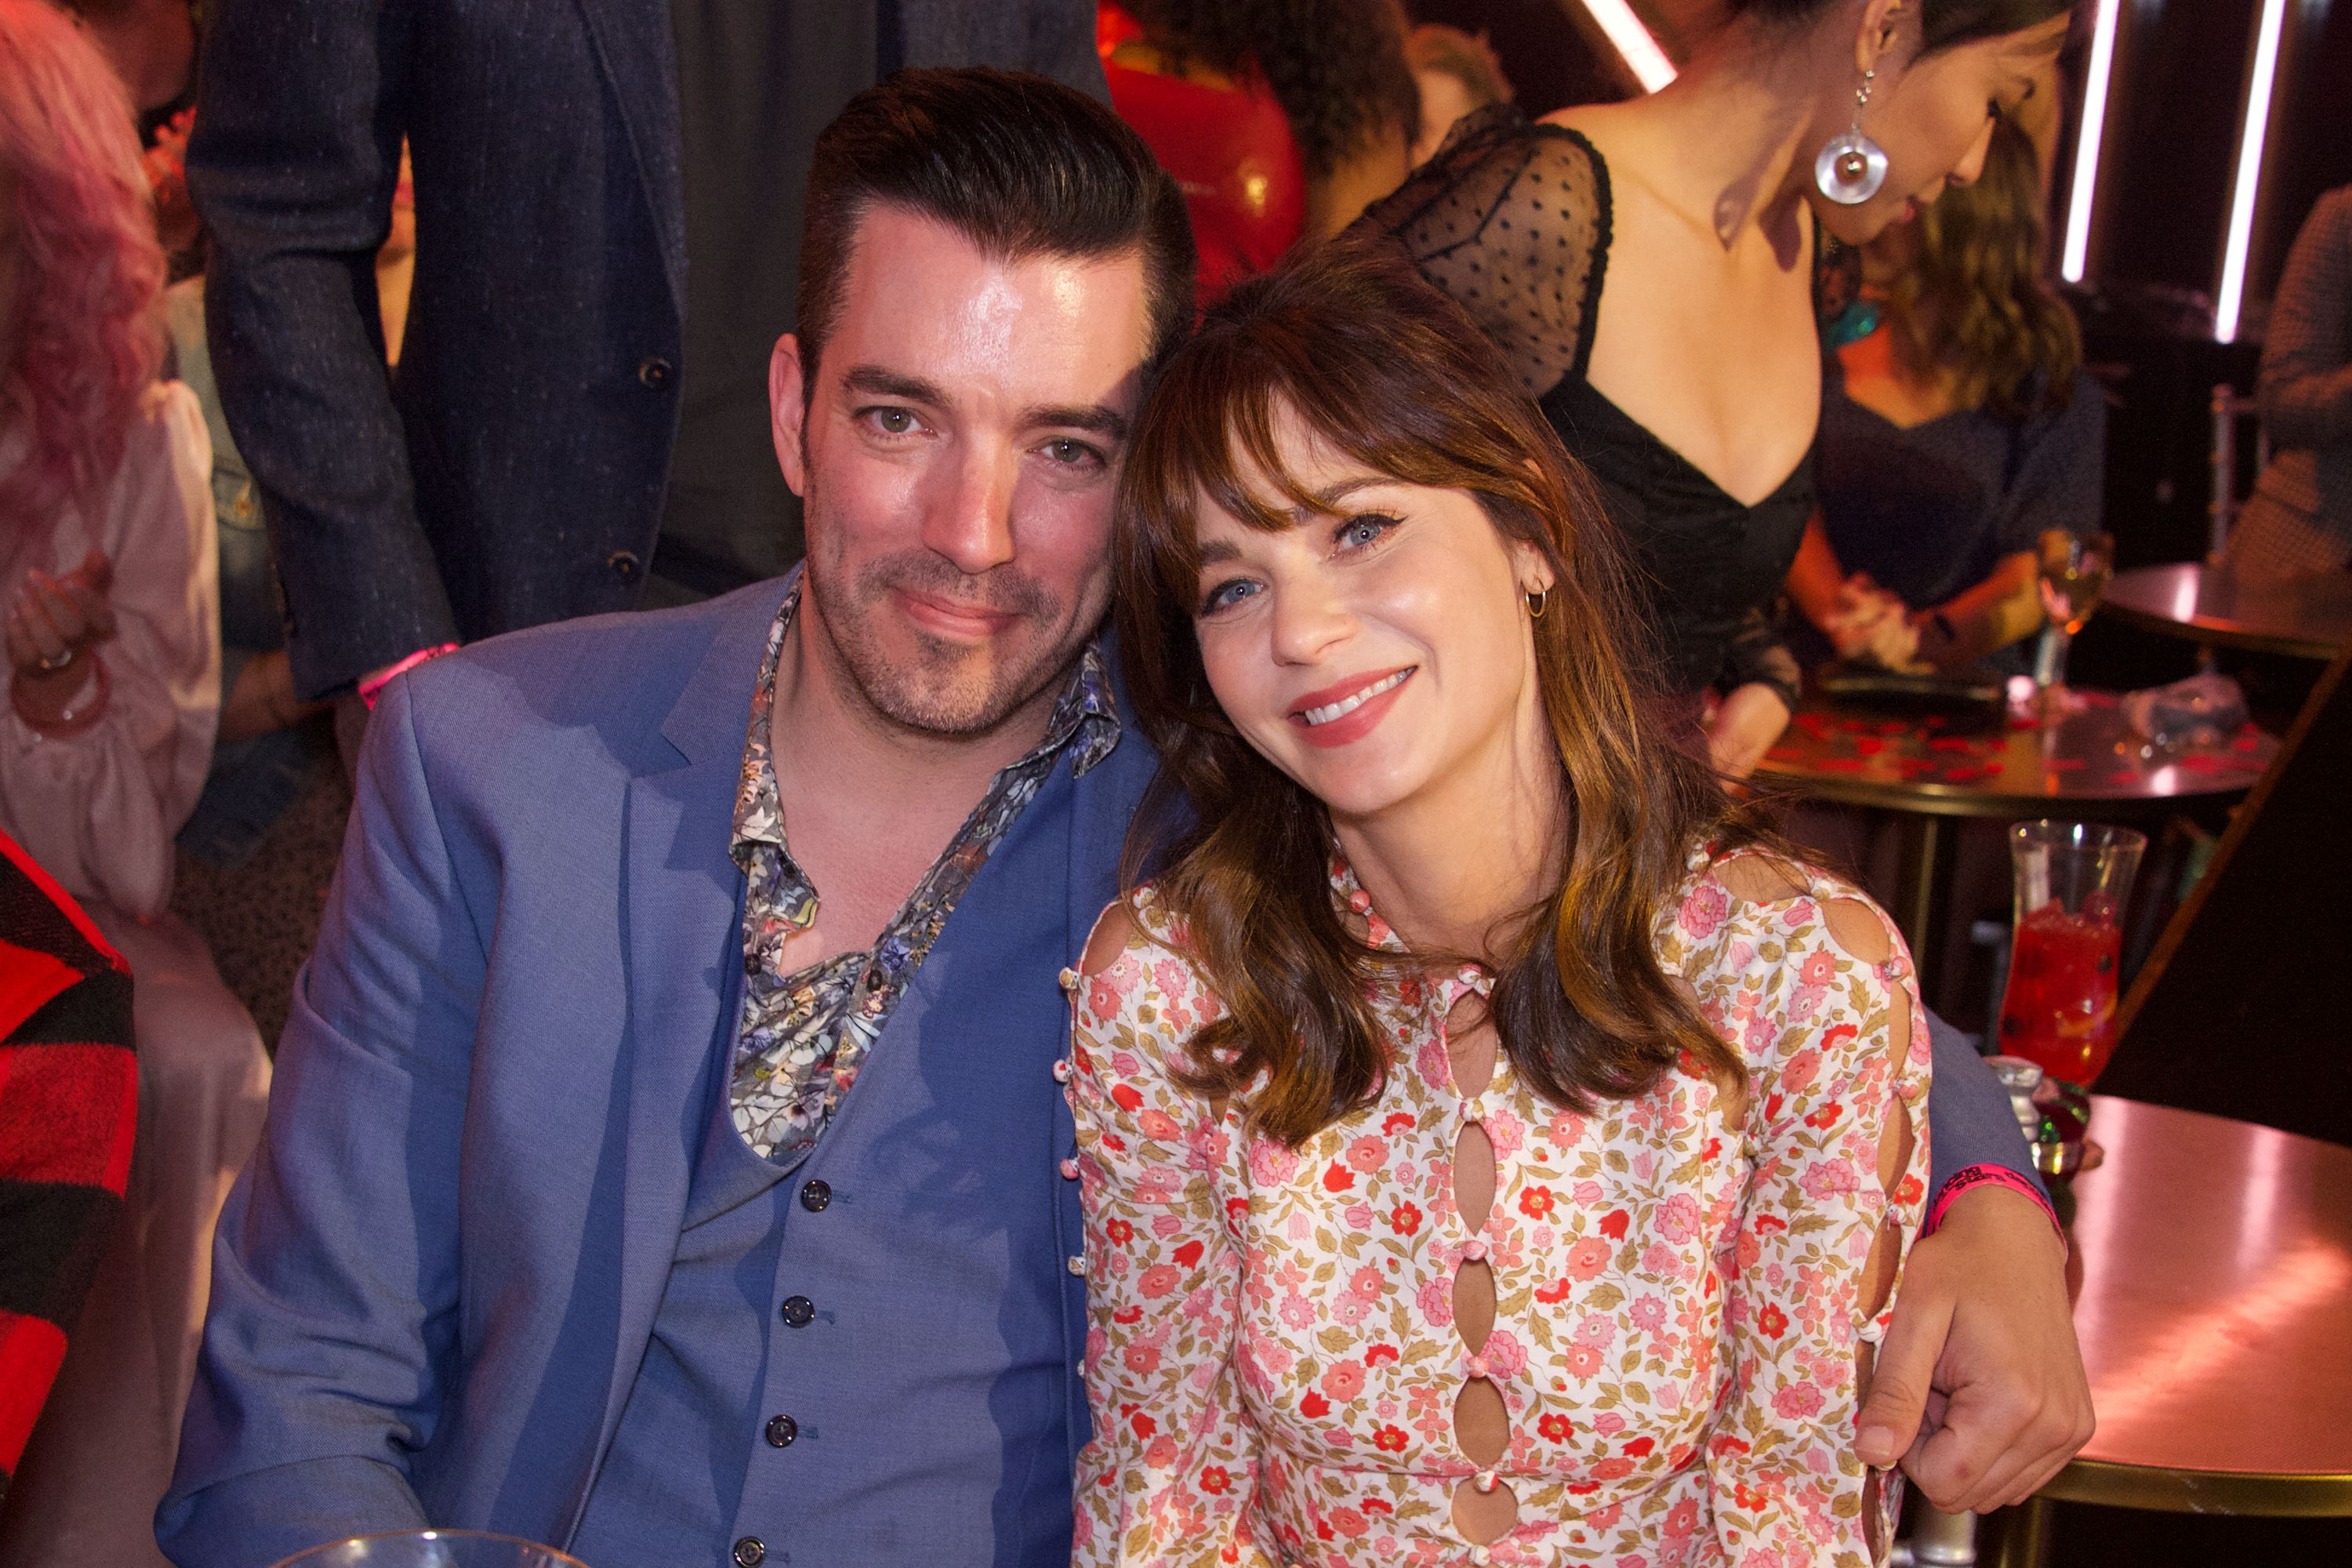 Jonathan Scott Says 'Beautiful Human' Zooey Deschanel 'Brought Joy and Laughter Back Into My Life'